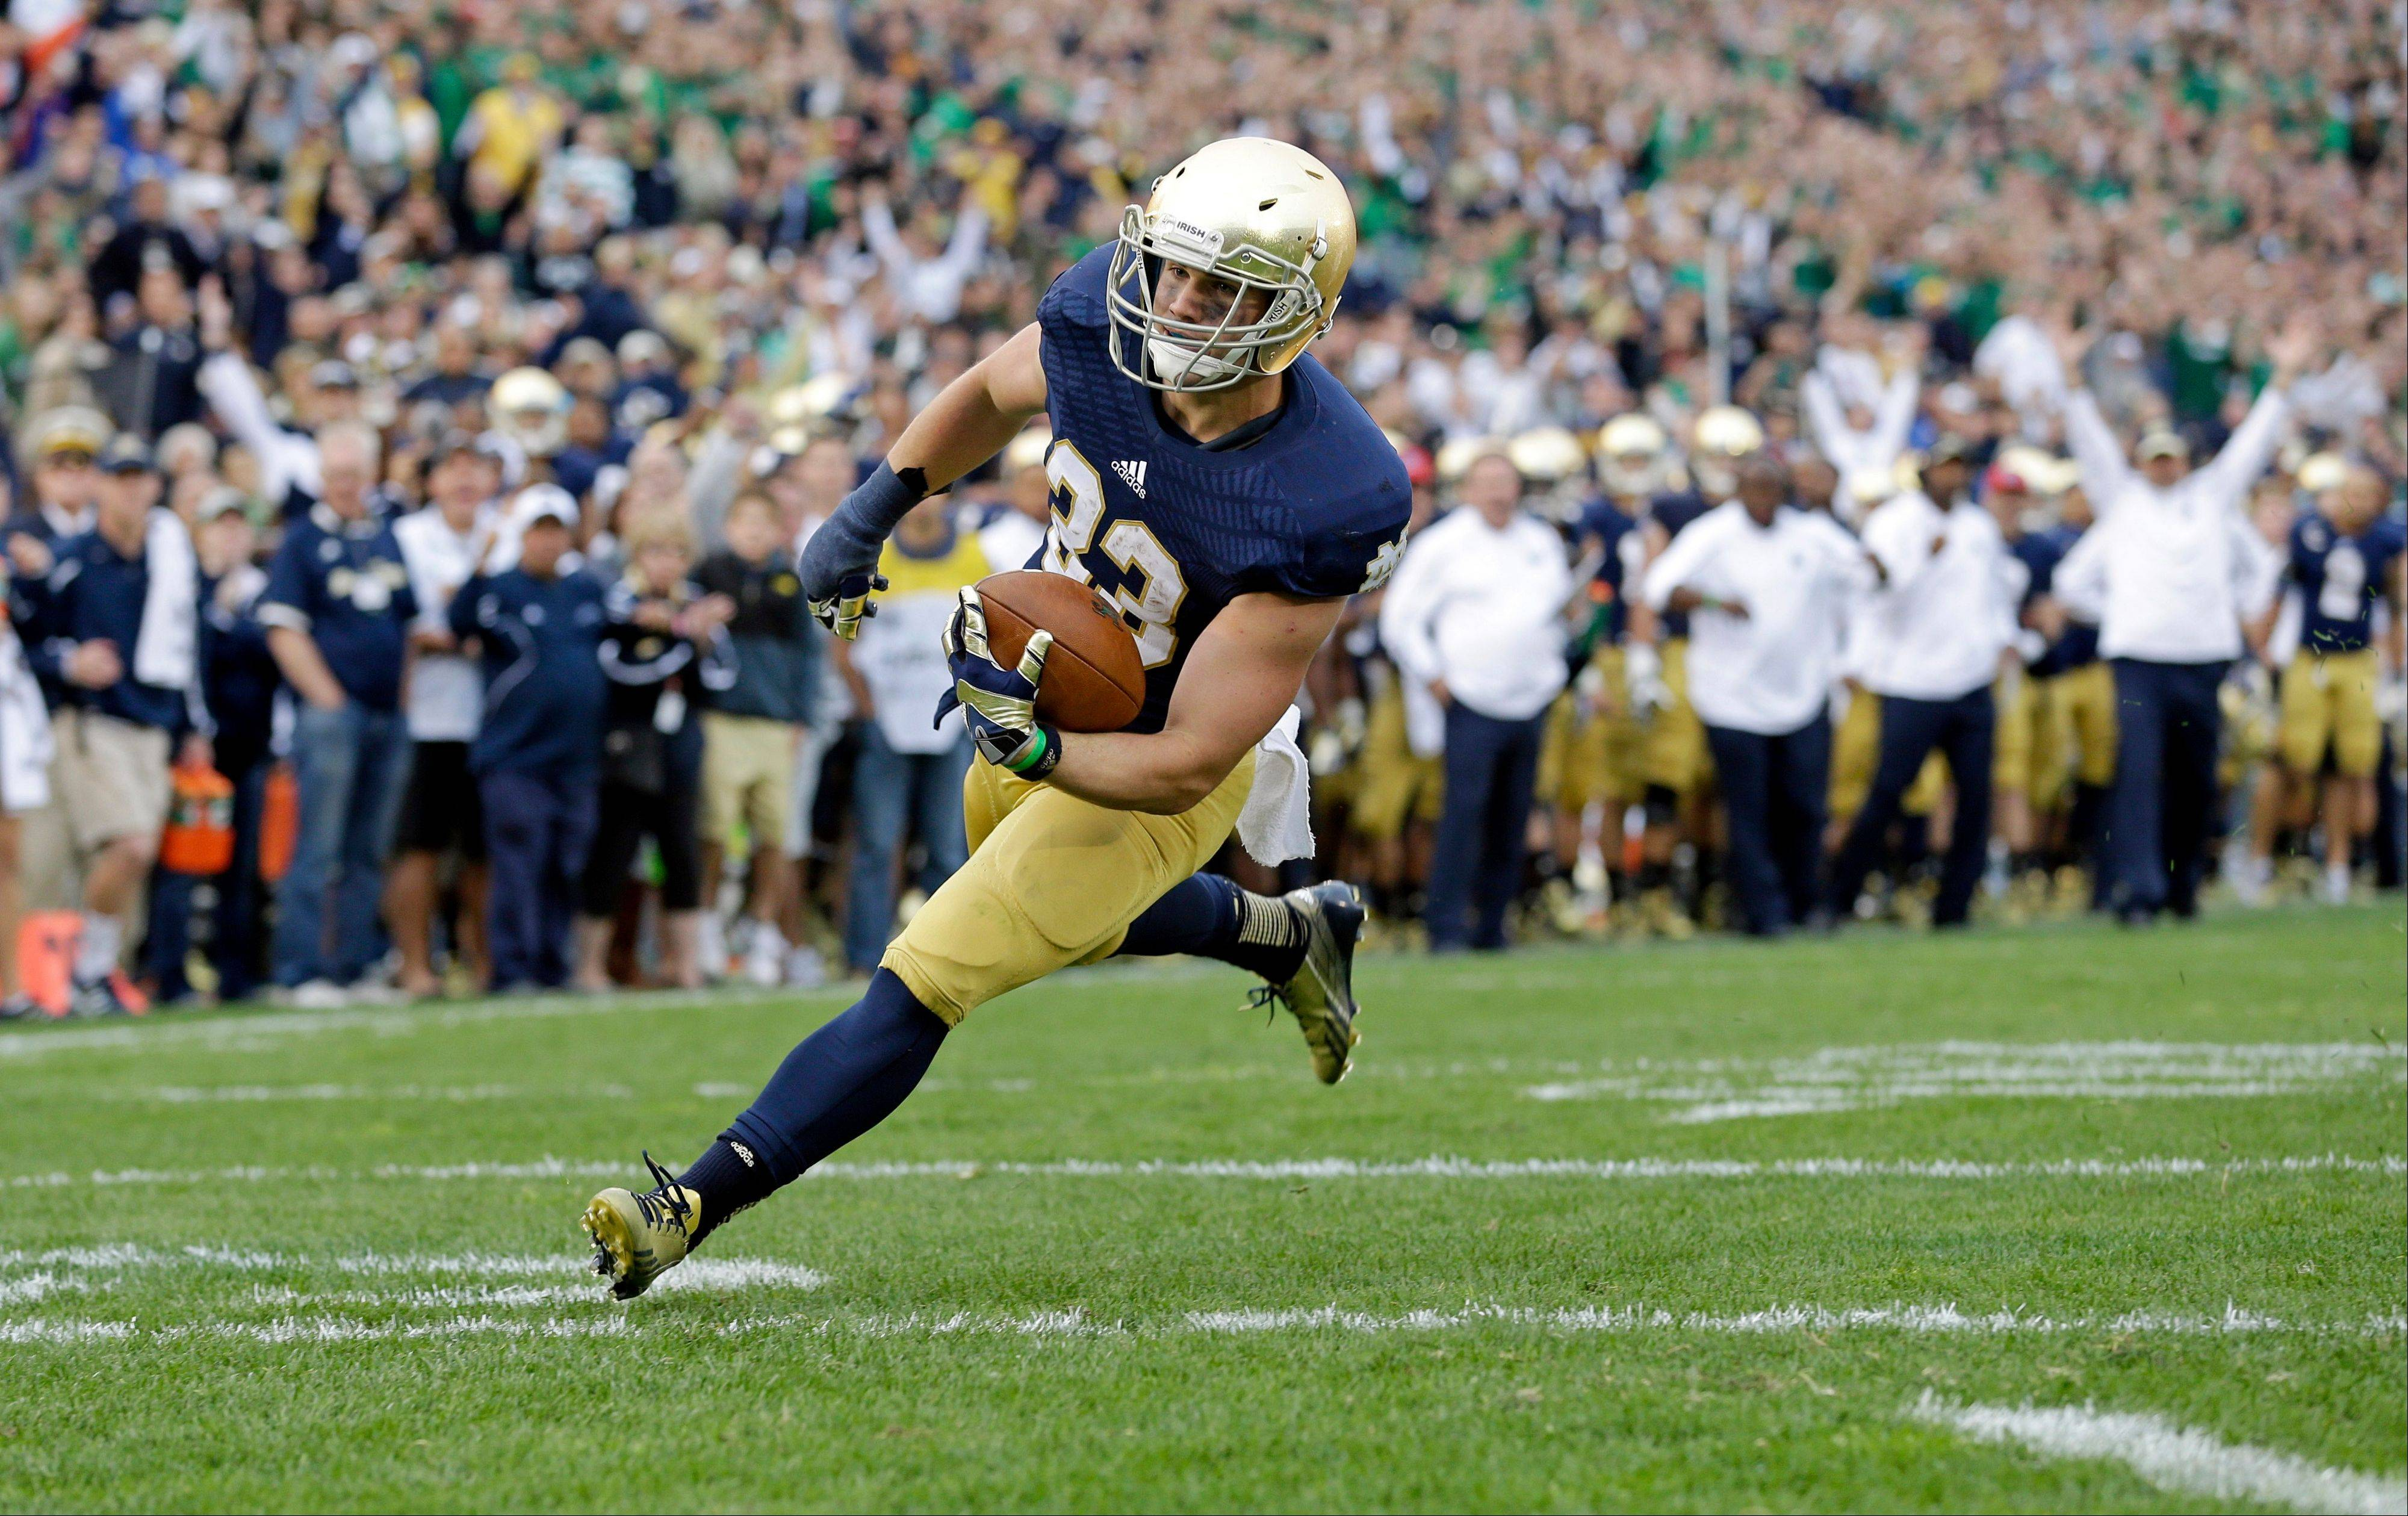 Notre Dame running back Cam McDaniel scores a touchdown against Michigan State during the second half of last Saturday's game in South Bend, Ind. The Irish face No. 14 Oklahoma this weekend.